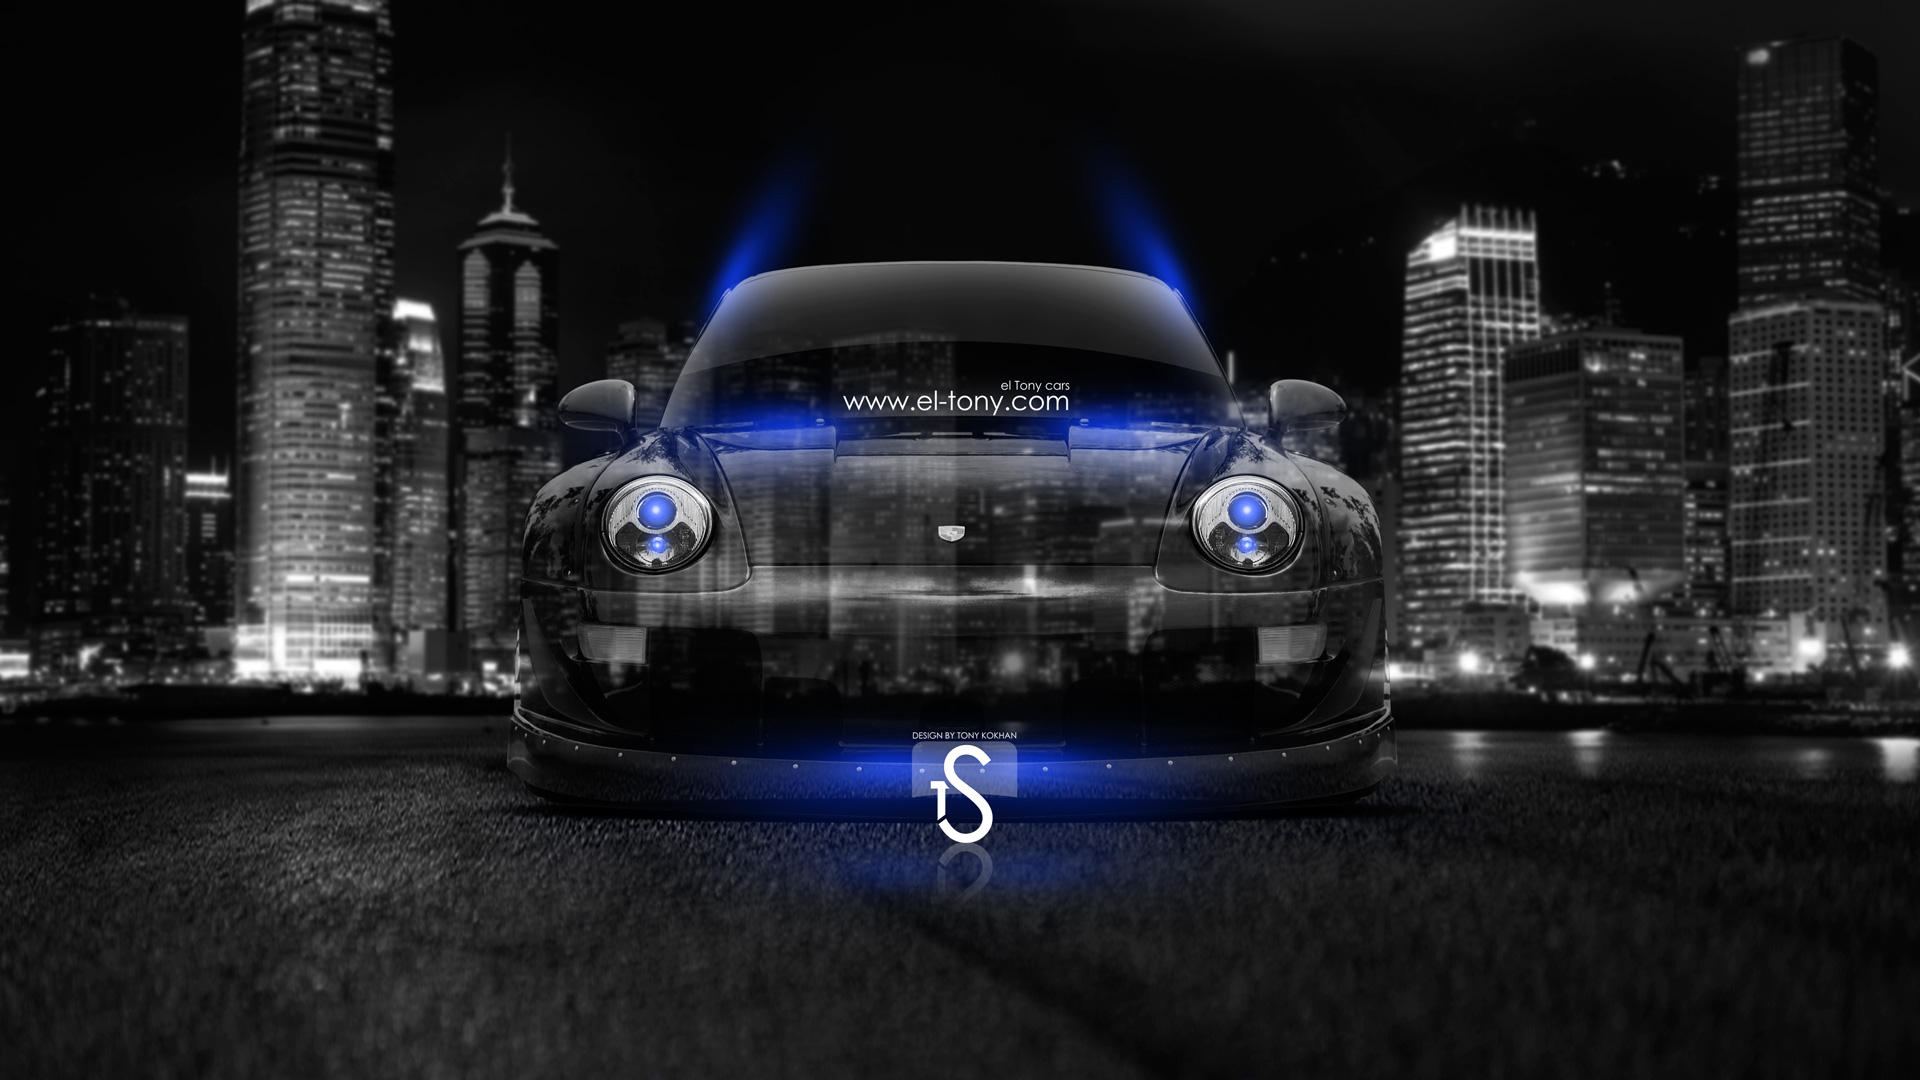 Porsche Crystal City Car 2014 Blue Neon HD